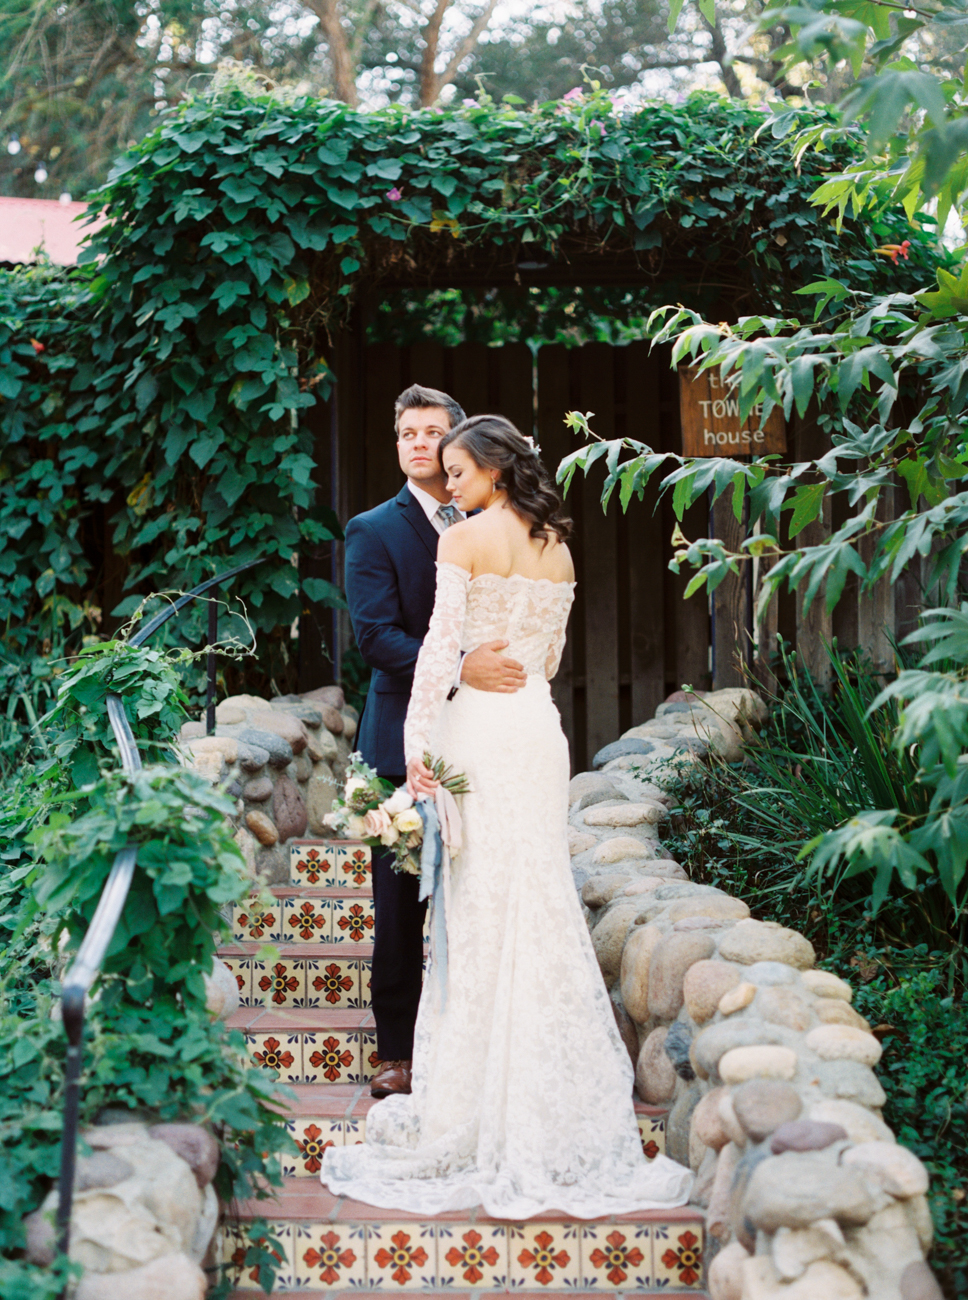 CALIFORNIA WINTER WEDDING | Rancho Las Lomas, CA